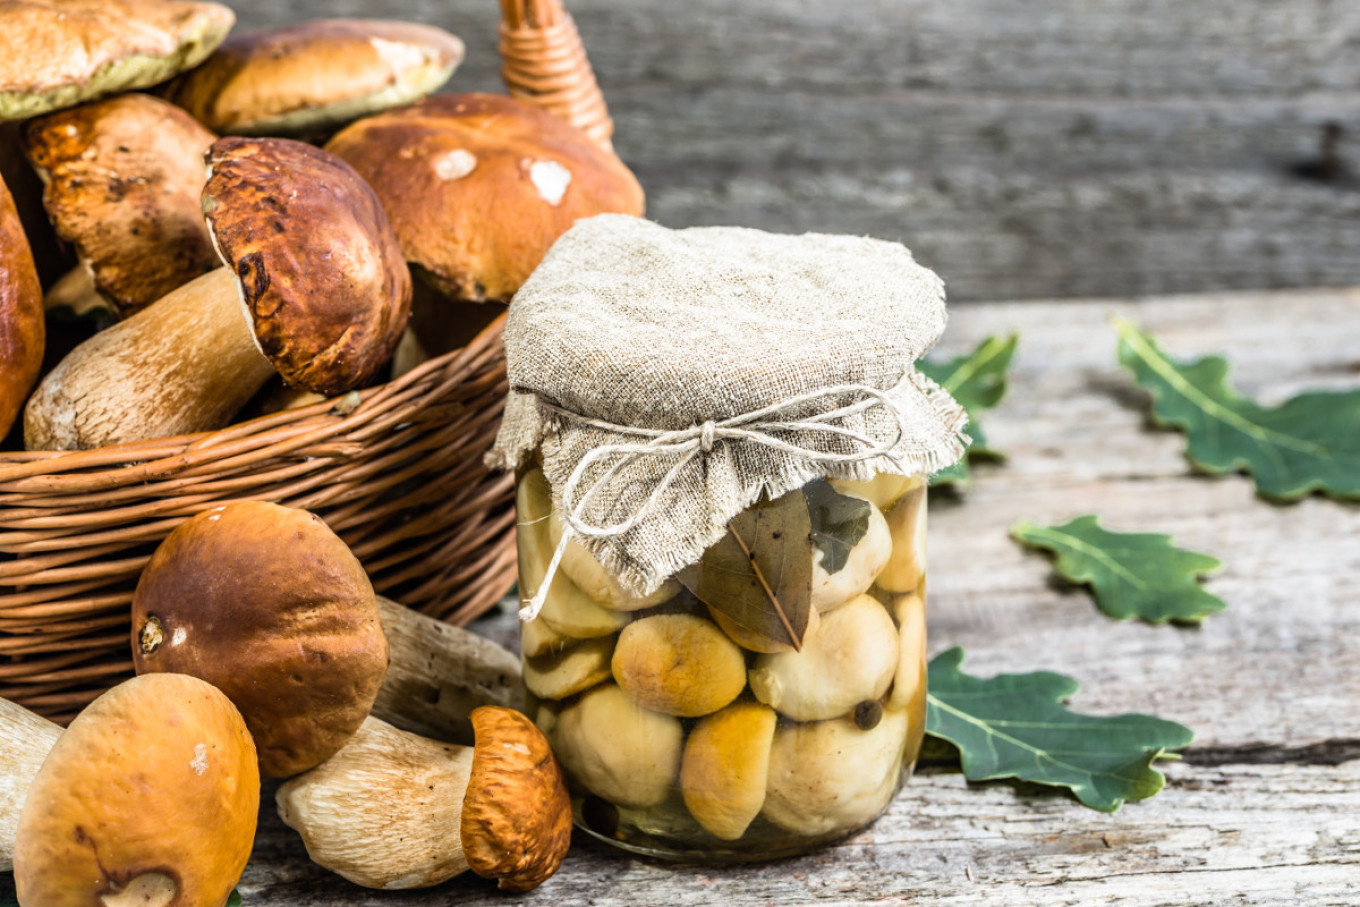 Some of Moscow best chefs will show off traditional Russian cuisine. mos.ru